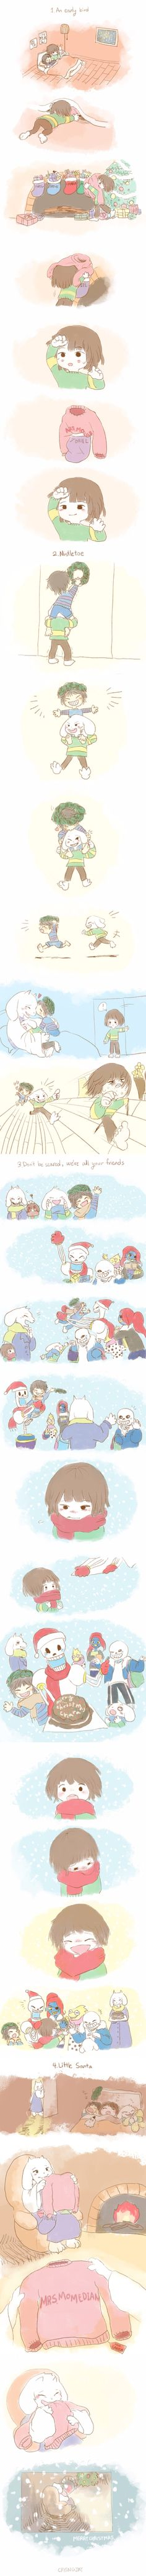 Undertale - comic - Christmas